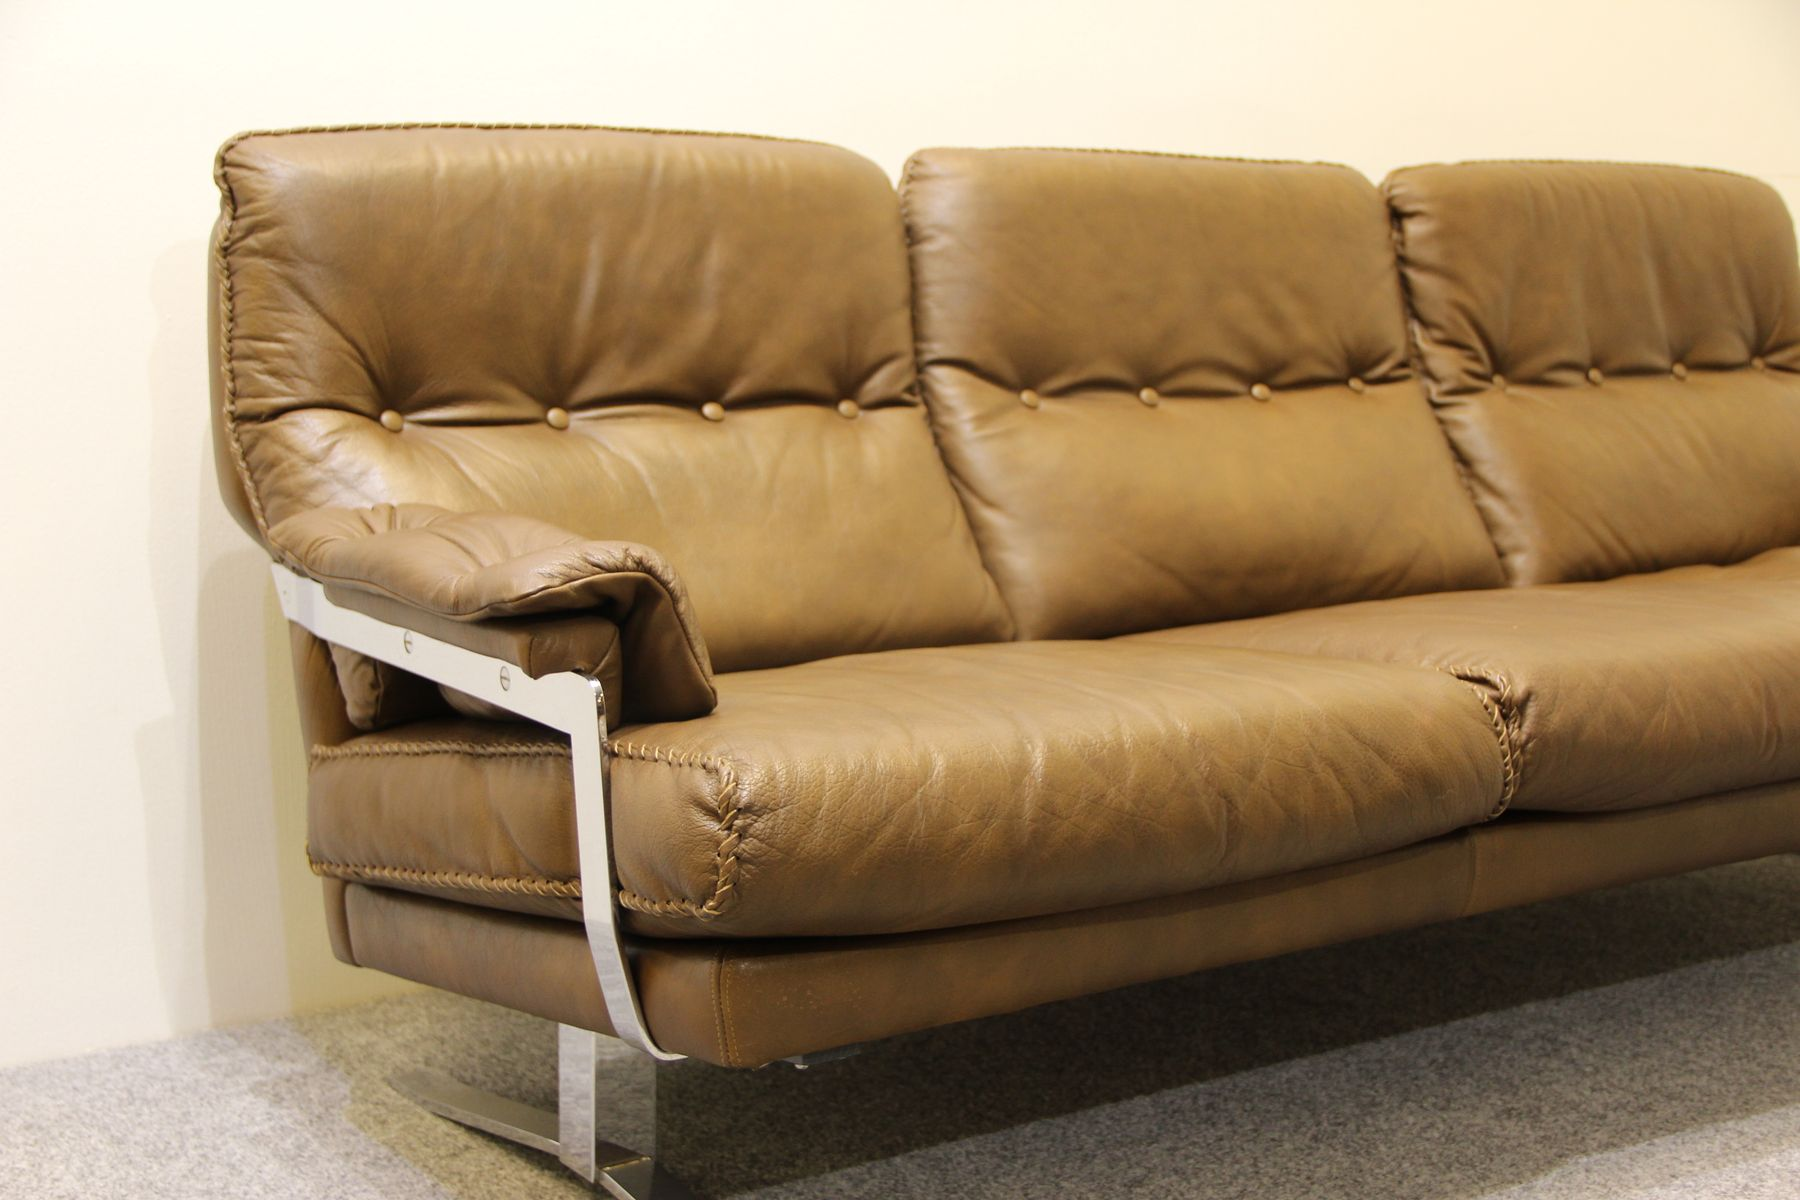 buffalo leather chair folding desk with wheels danish brown sofa arne norell for sale at